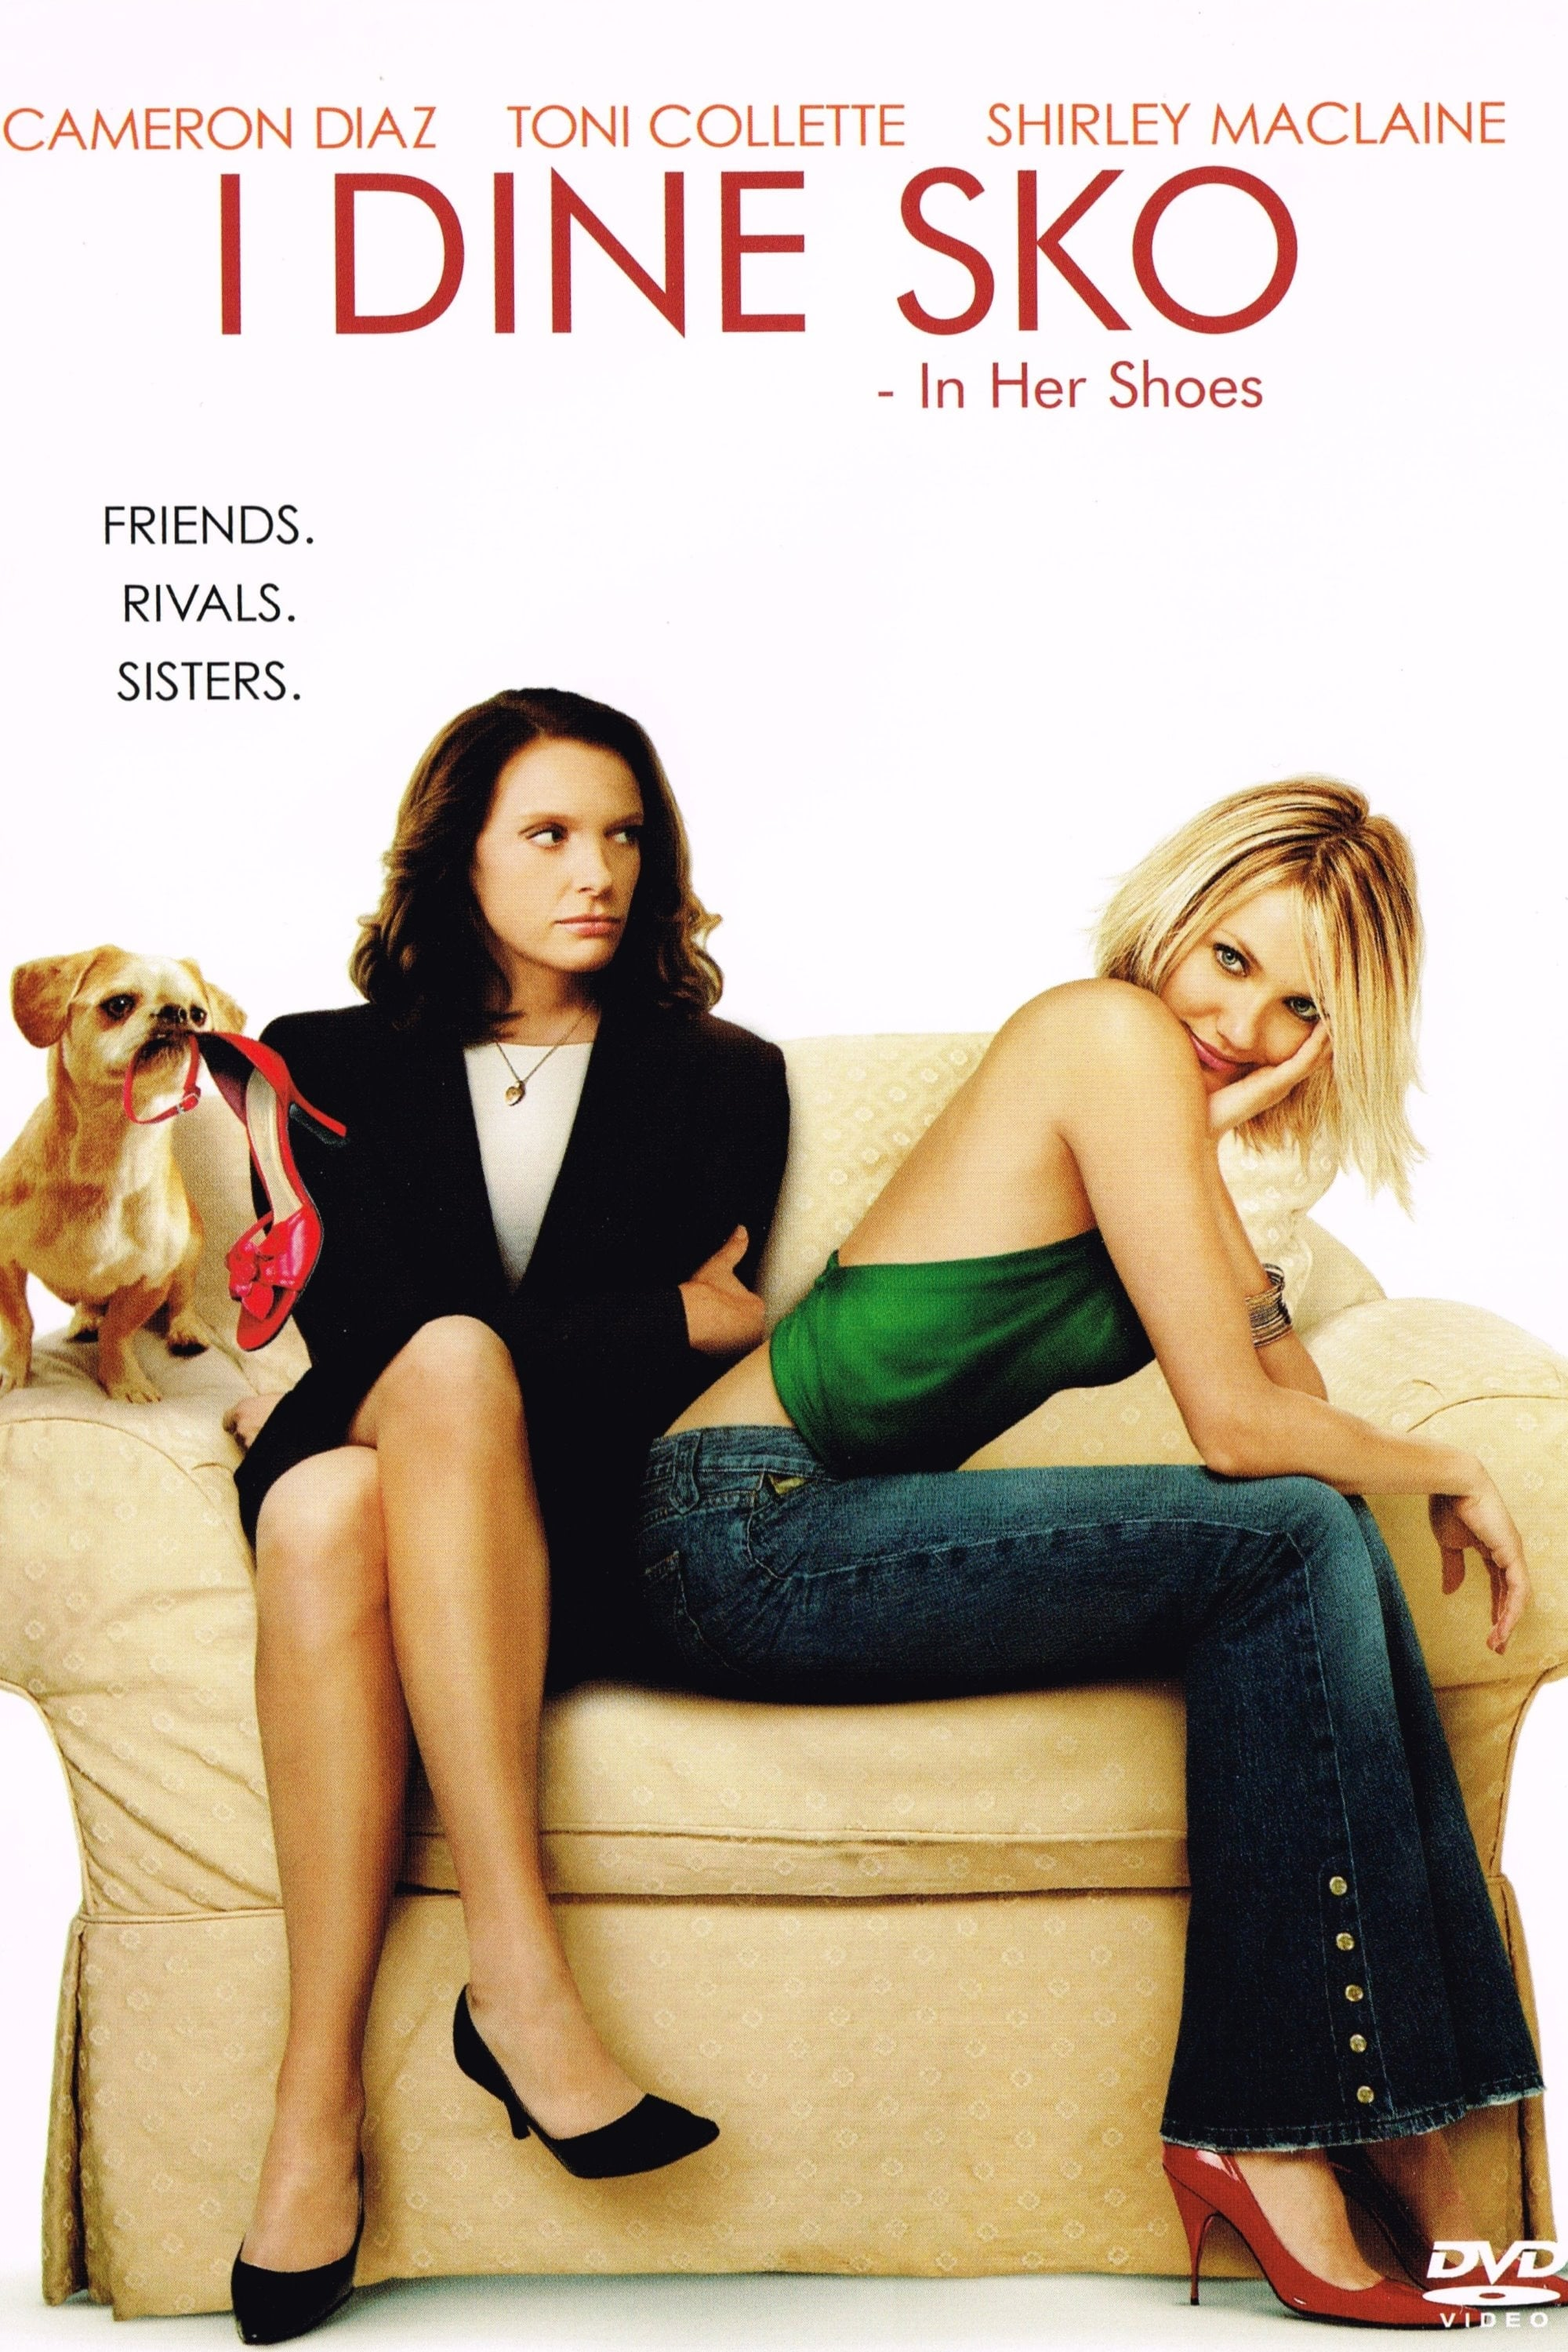 In her shoes | Cameron diaz sister, Free movies online, Full